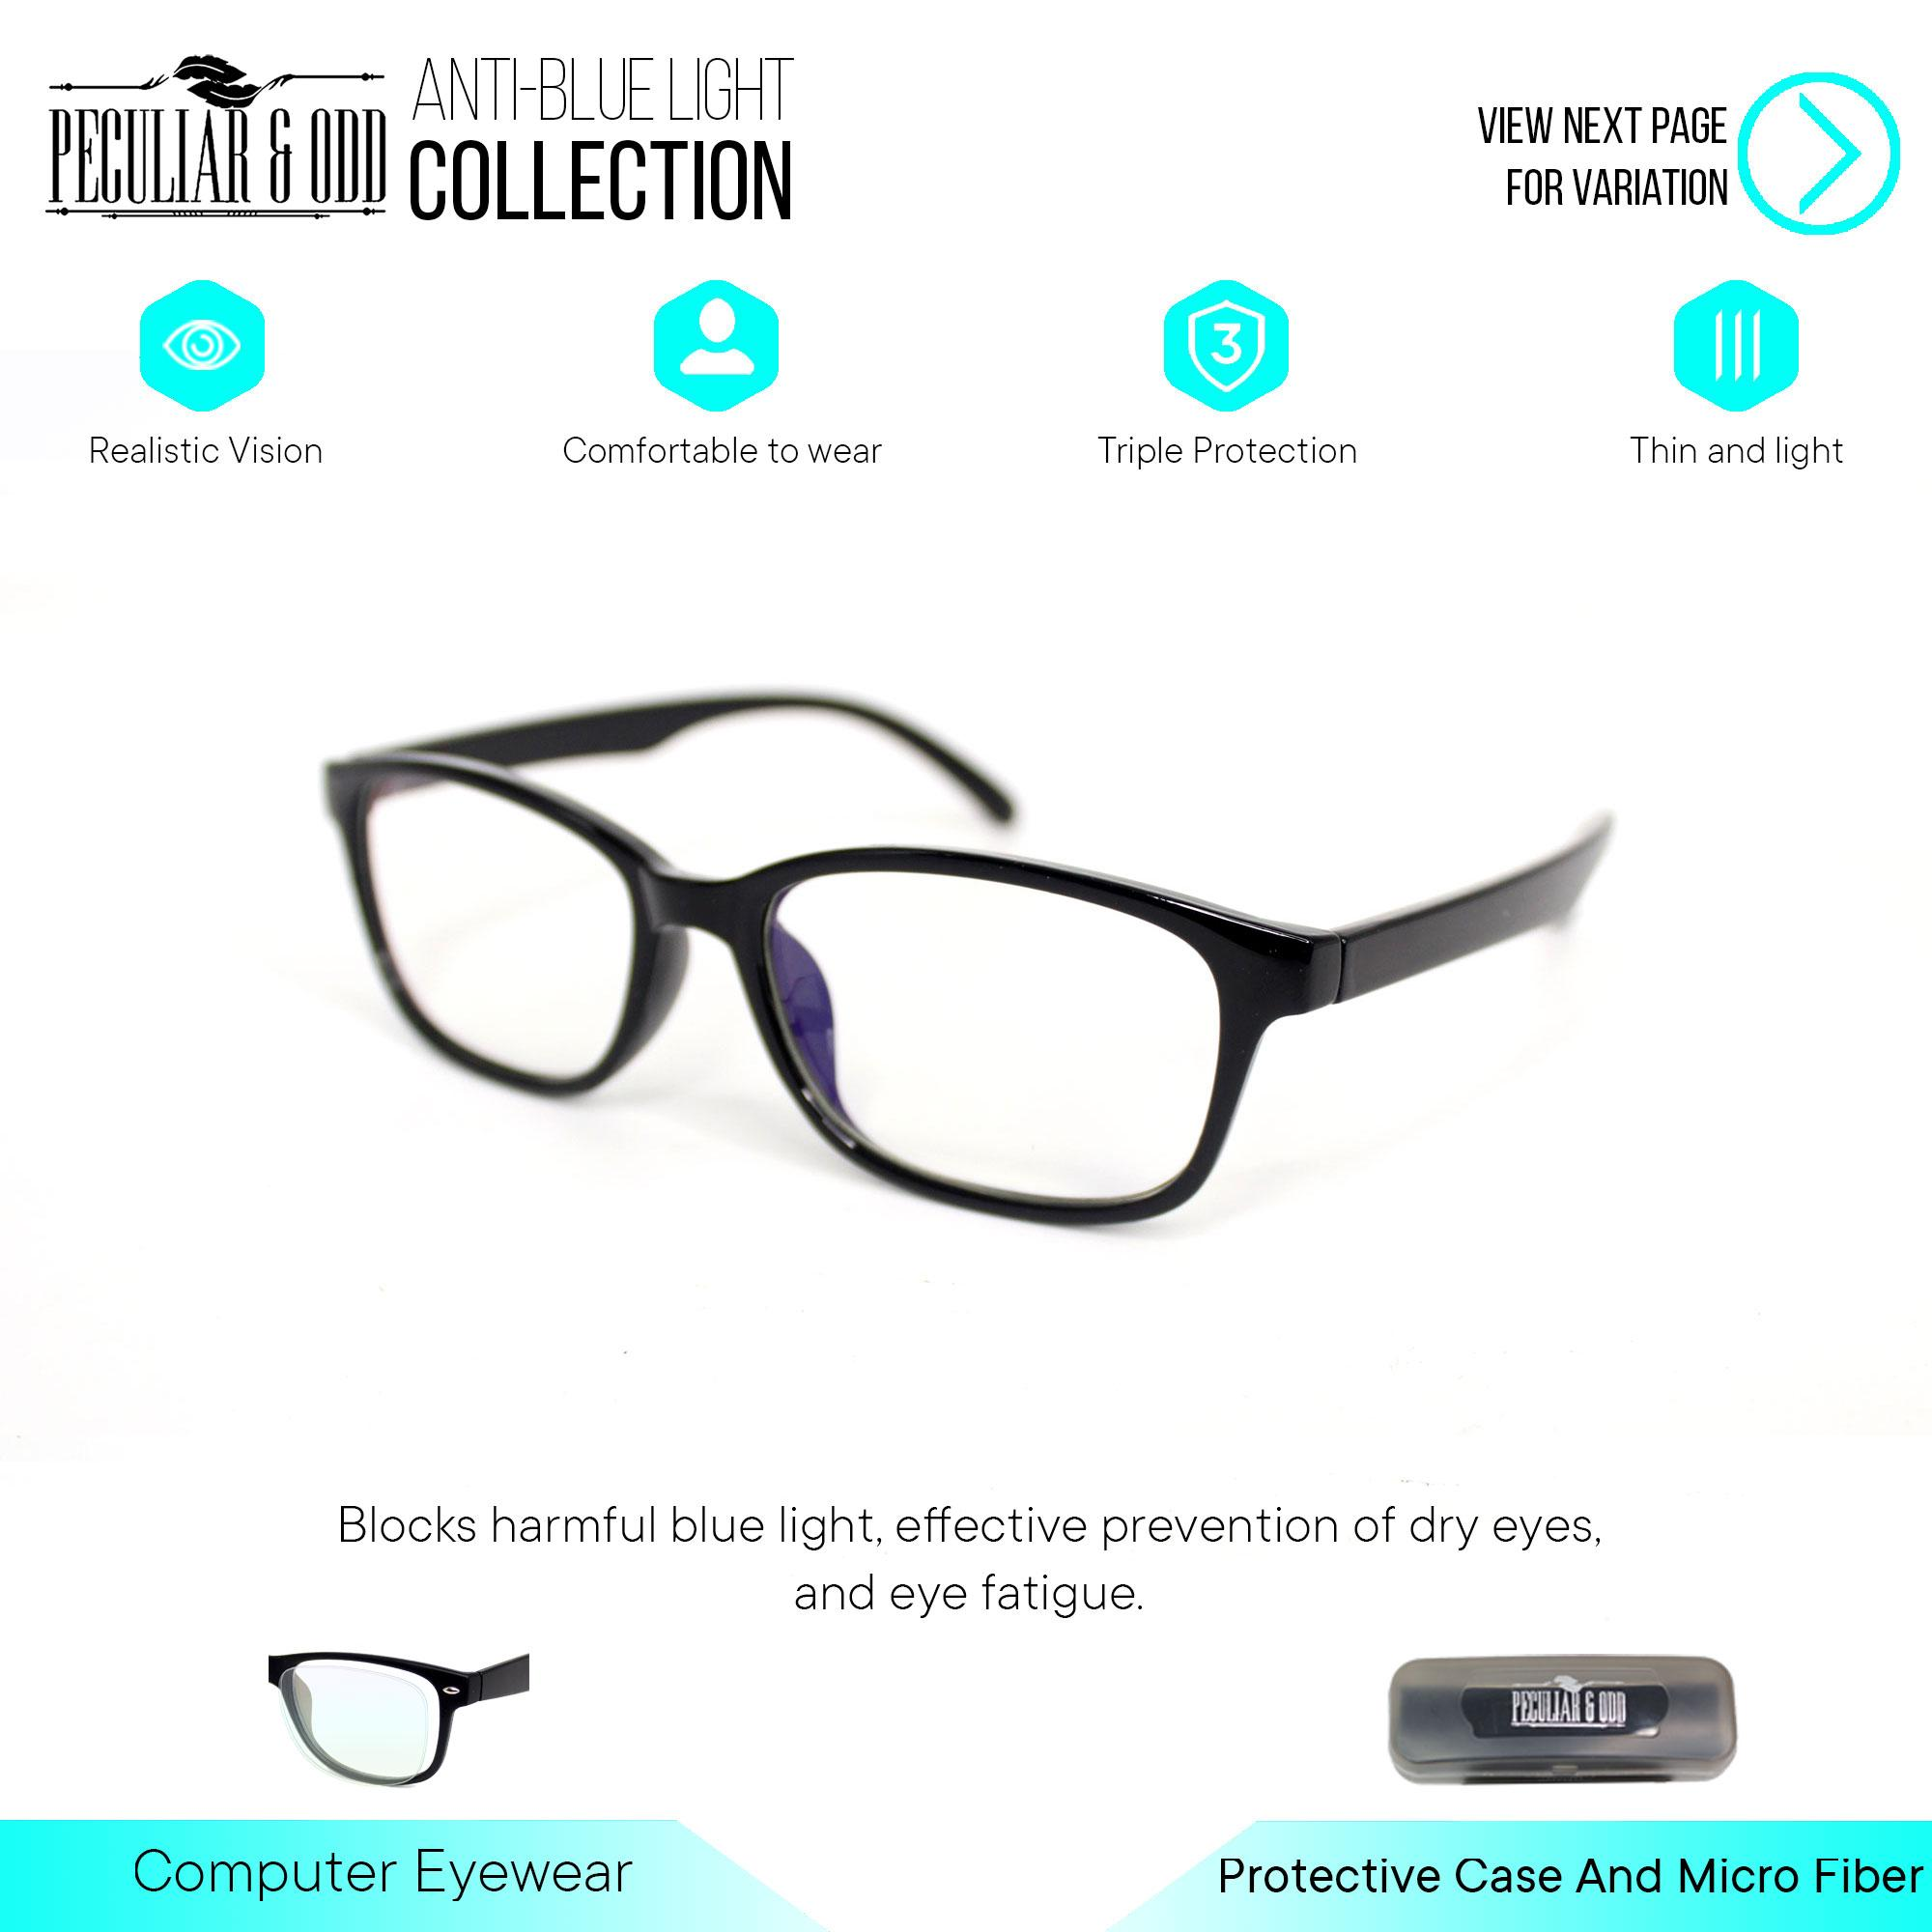 f668d8e4d Peculiar Square 3028_CoalBlackClear Anti Radiation Computer Optical  Replaceable for Prescription Unisex_new Eyewear / Eyeglass- Peculiar